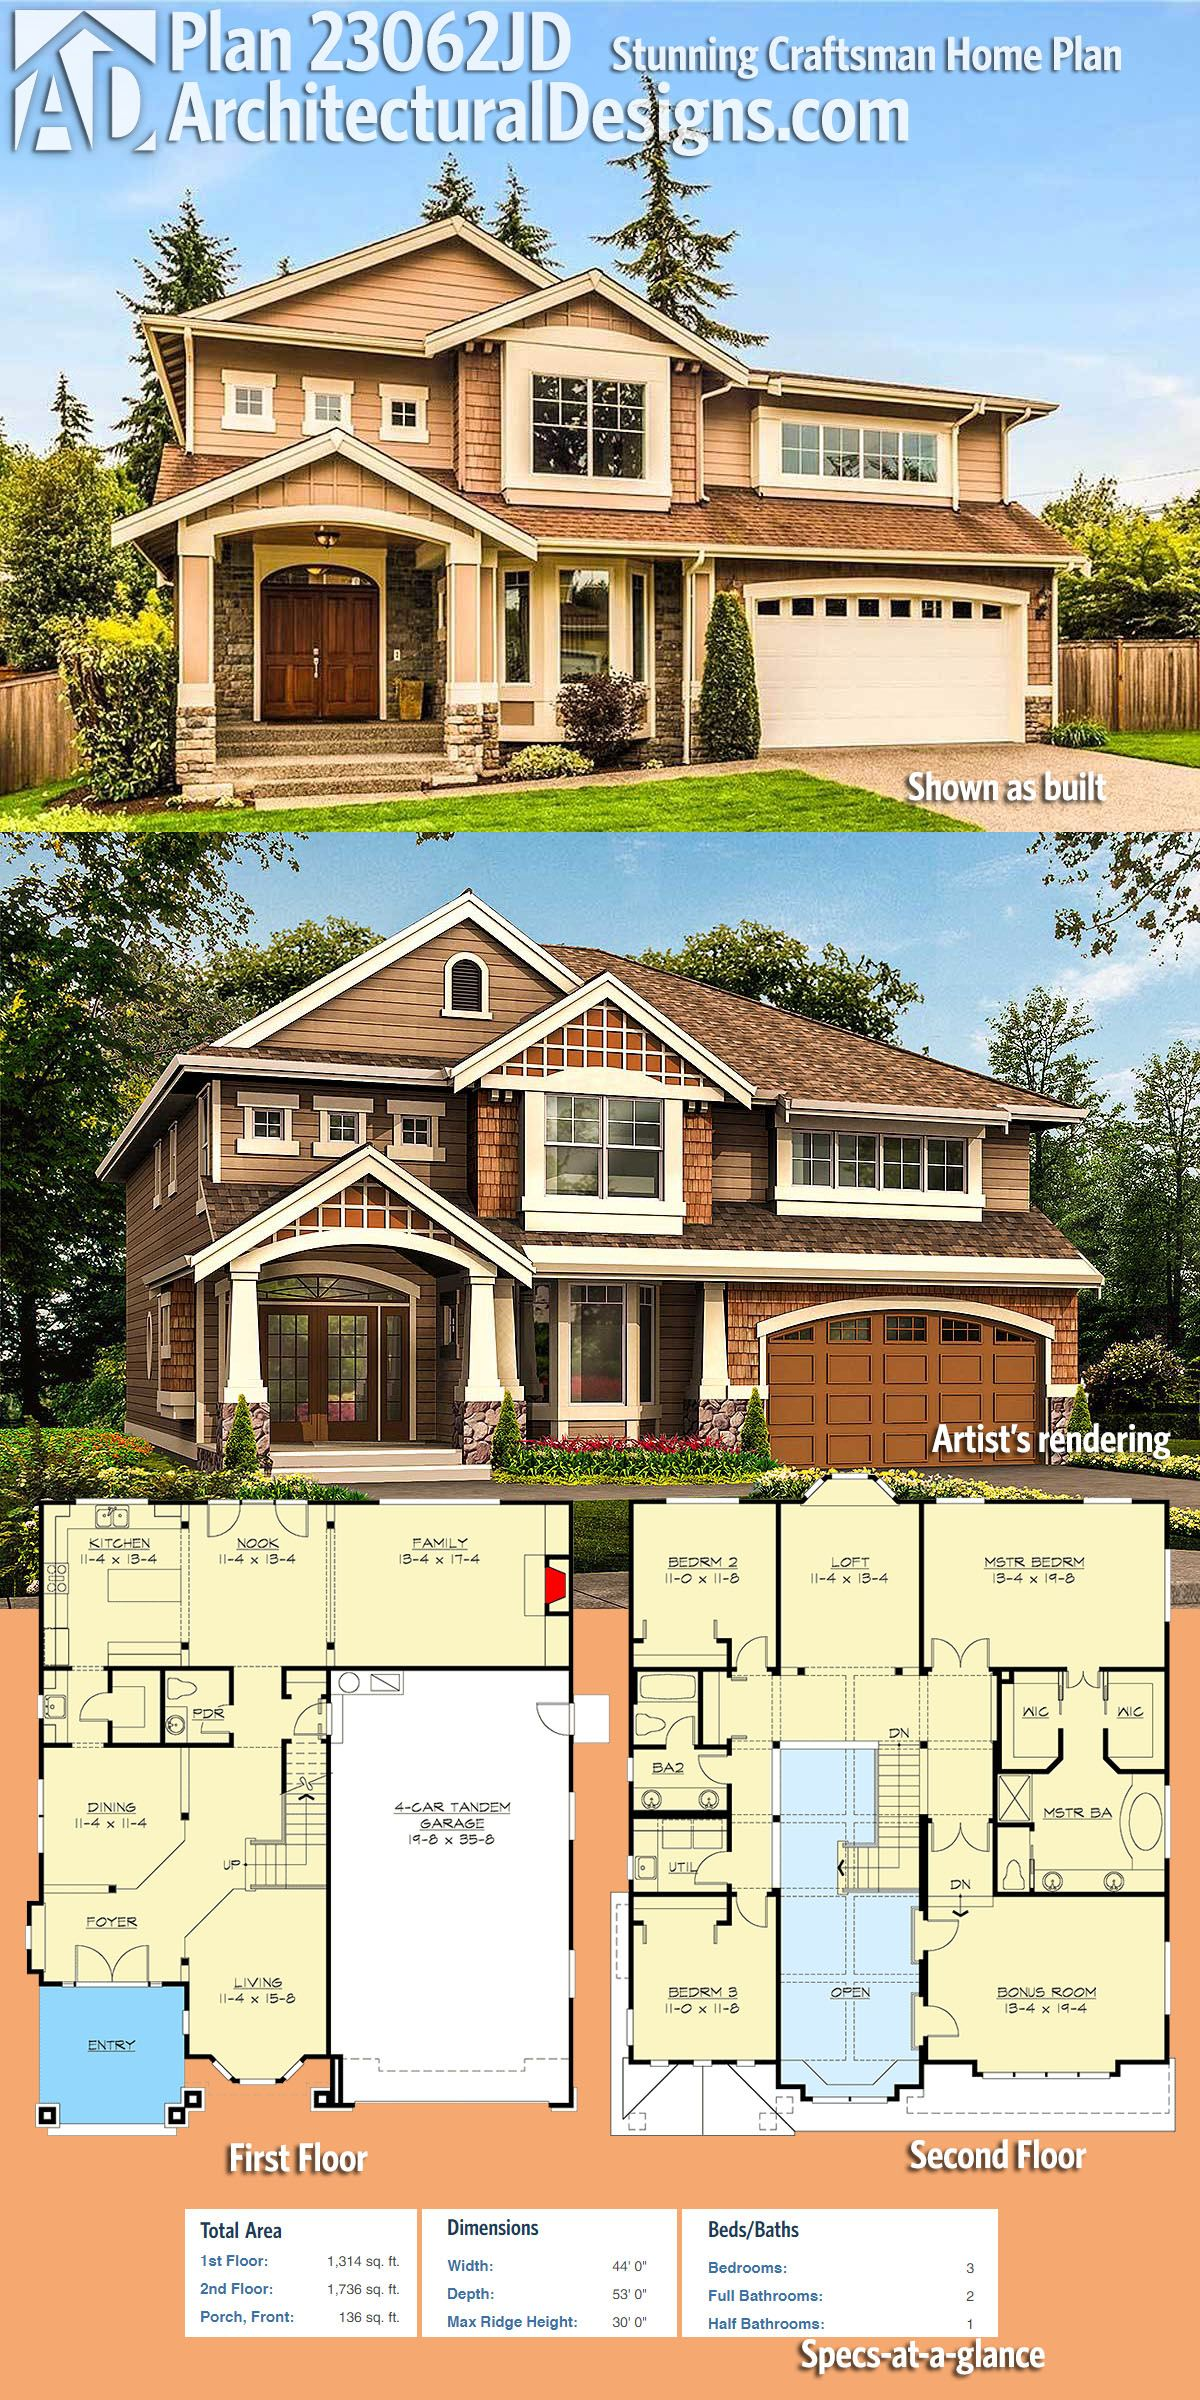 Architectural Designs 3 Bed Craftsman House Plan 23062JD